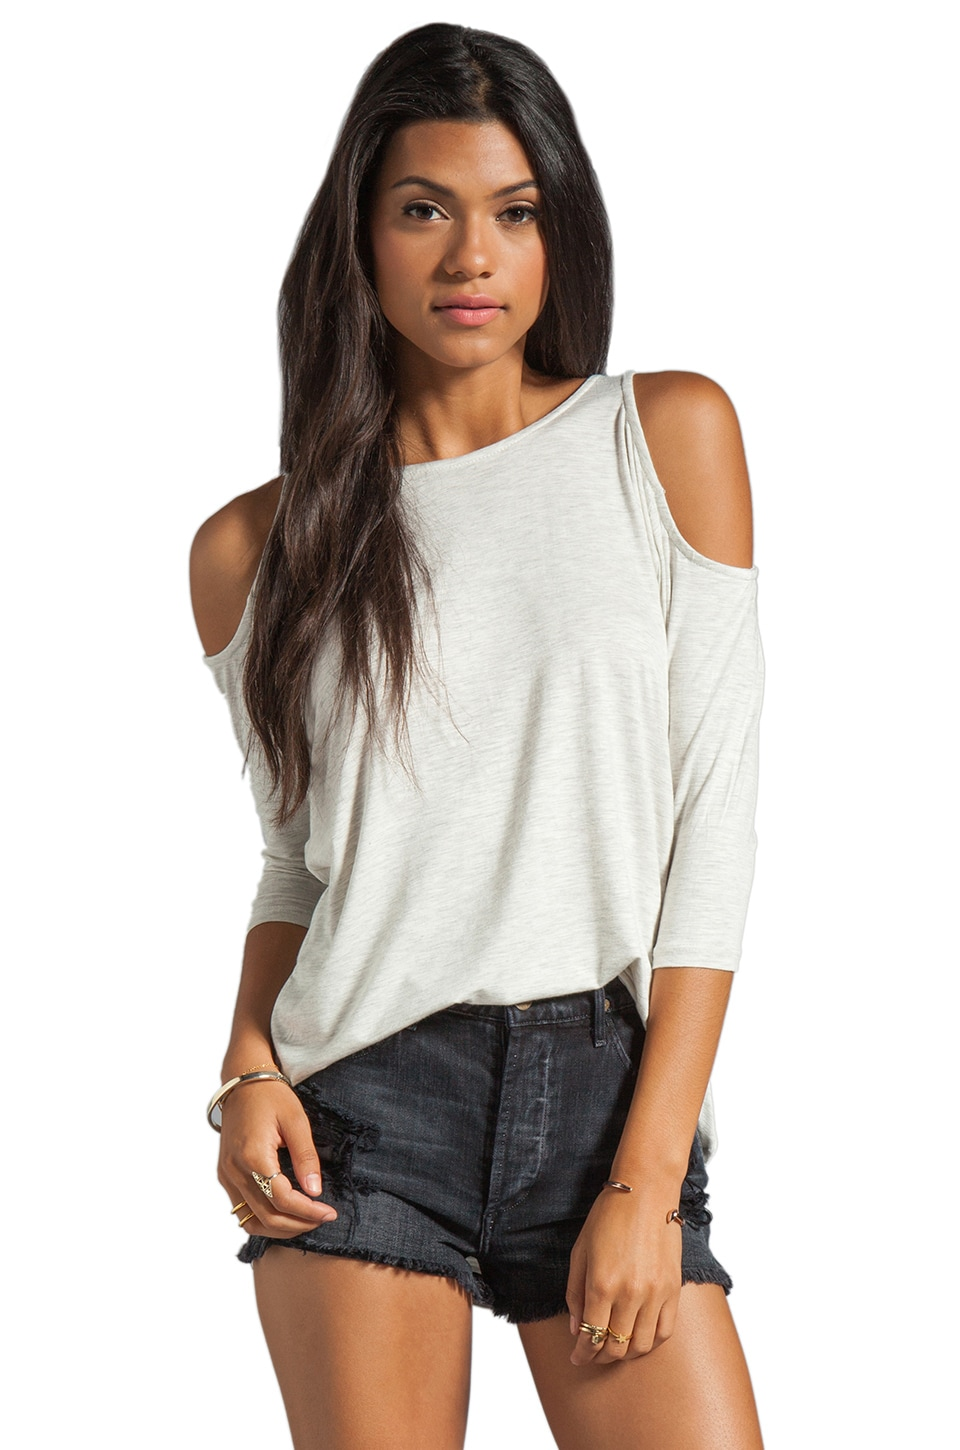 dolan Classic Slub Open Shoulder Tee in Bleach